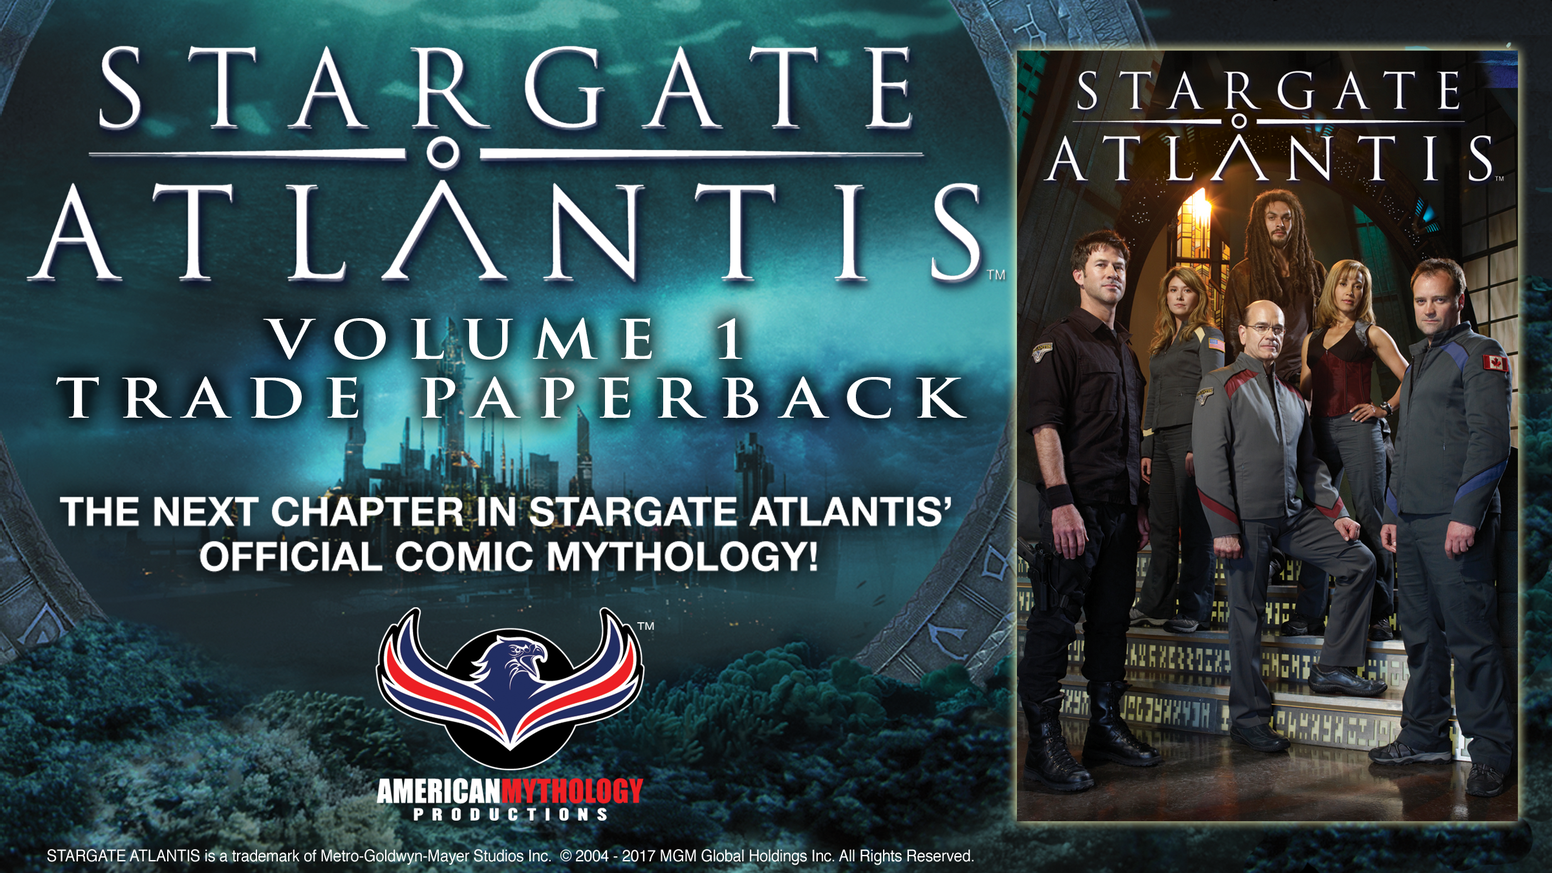 American Mythology is proud to bring the collected first two chapters of Stargate Atlantis comic books to a brand new graphic novel!